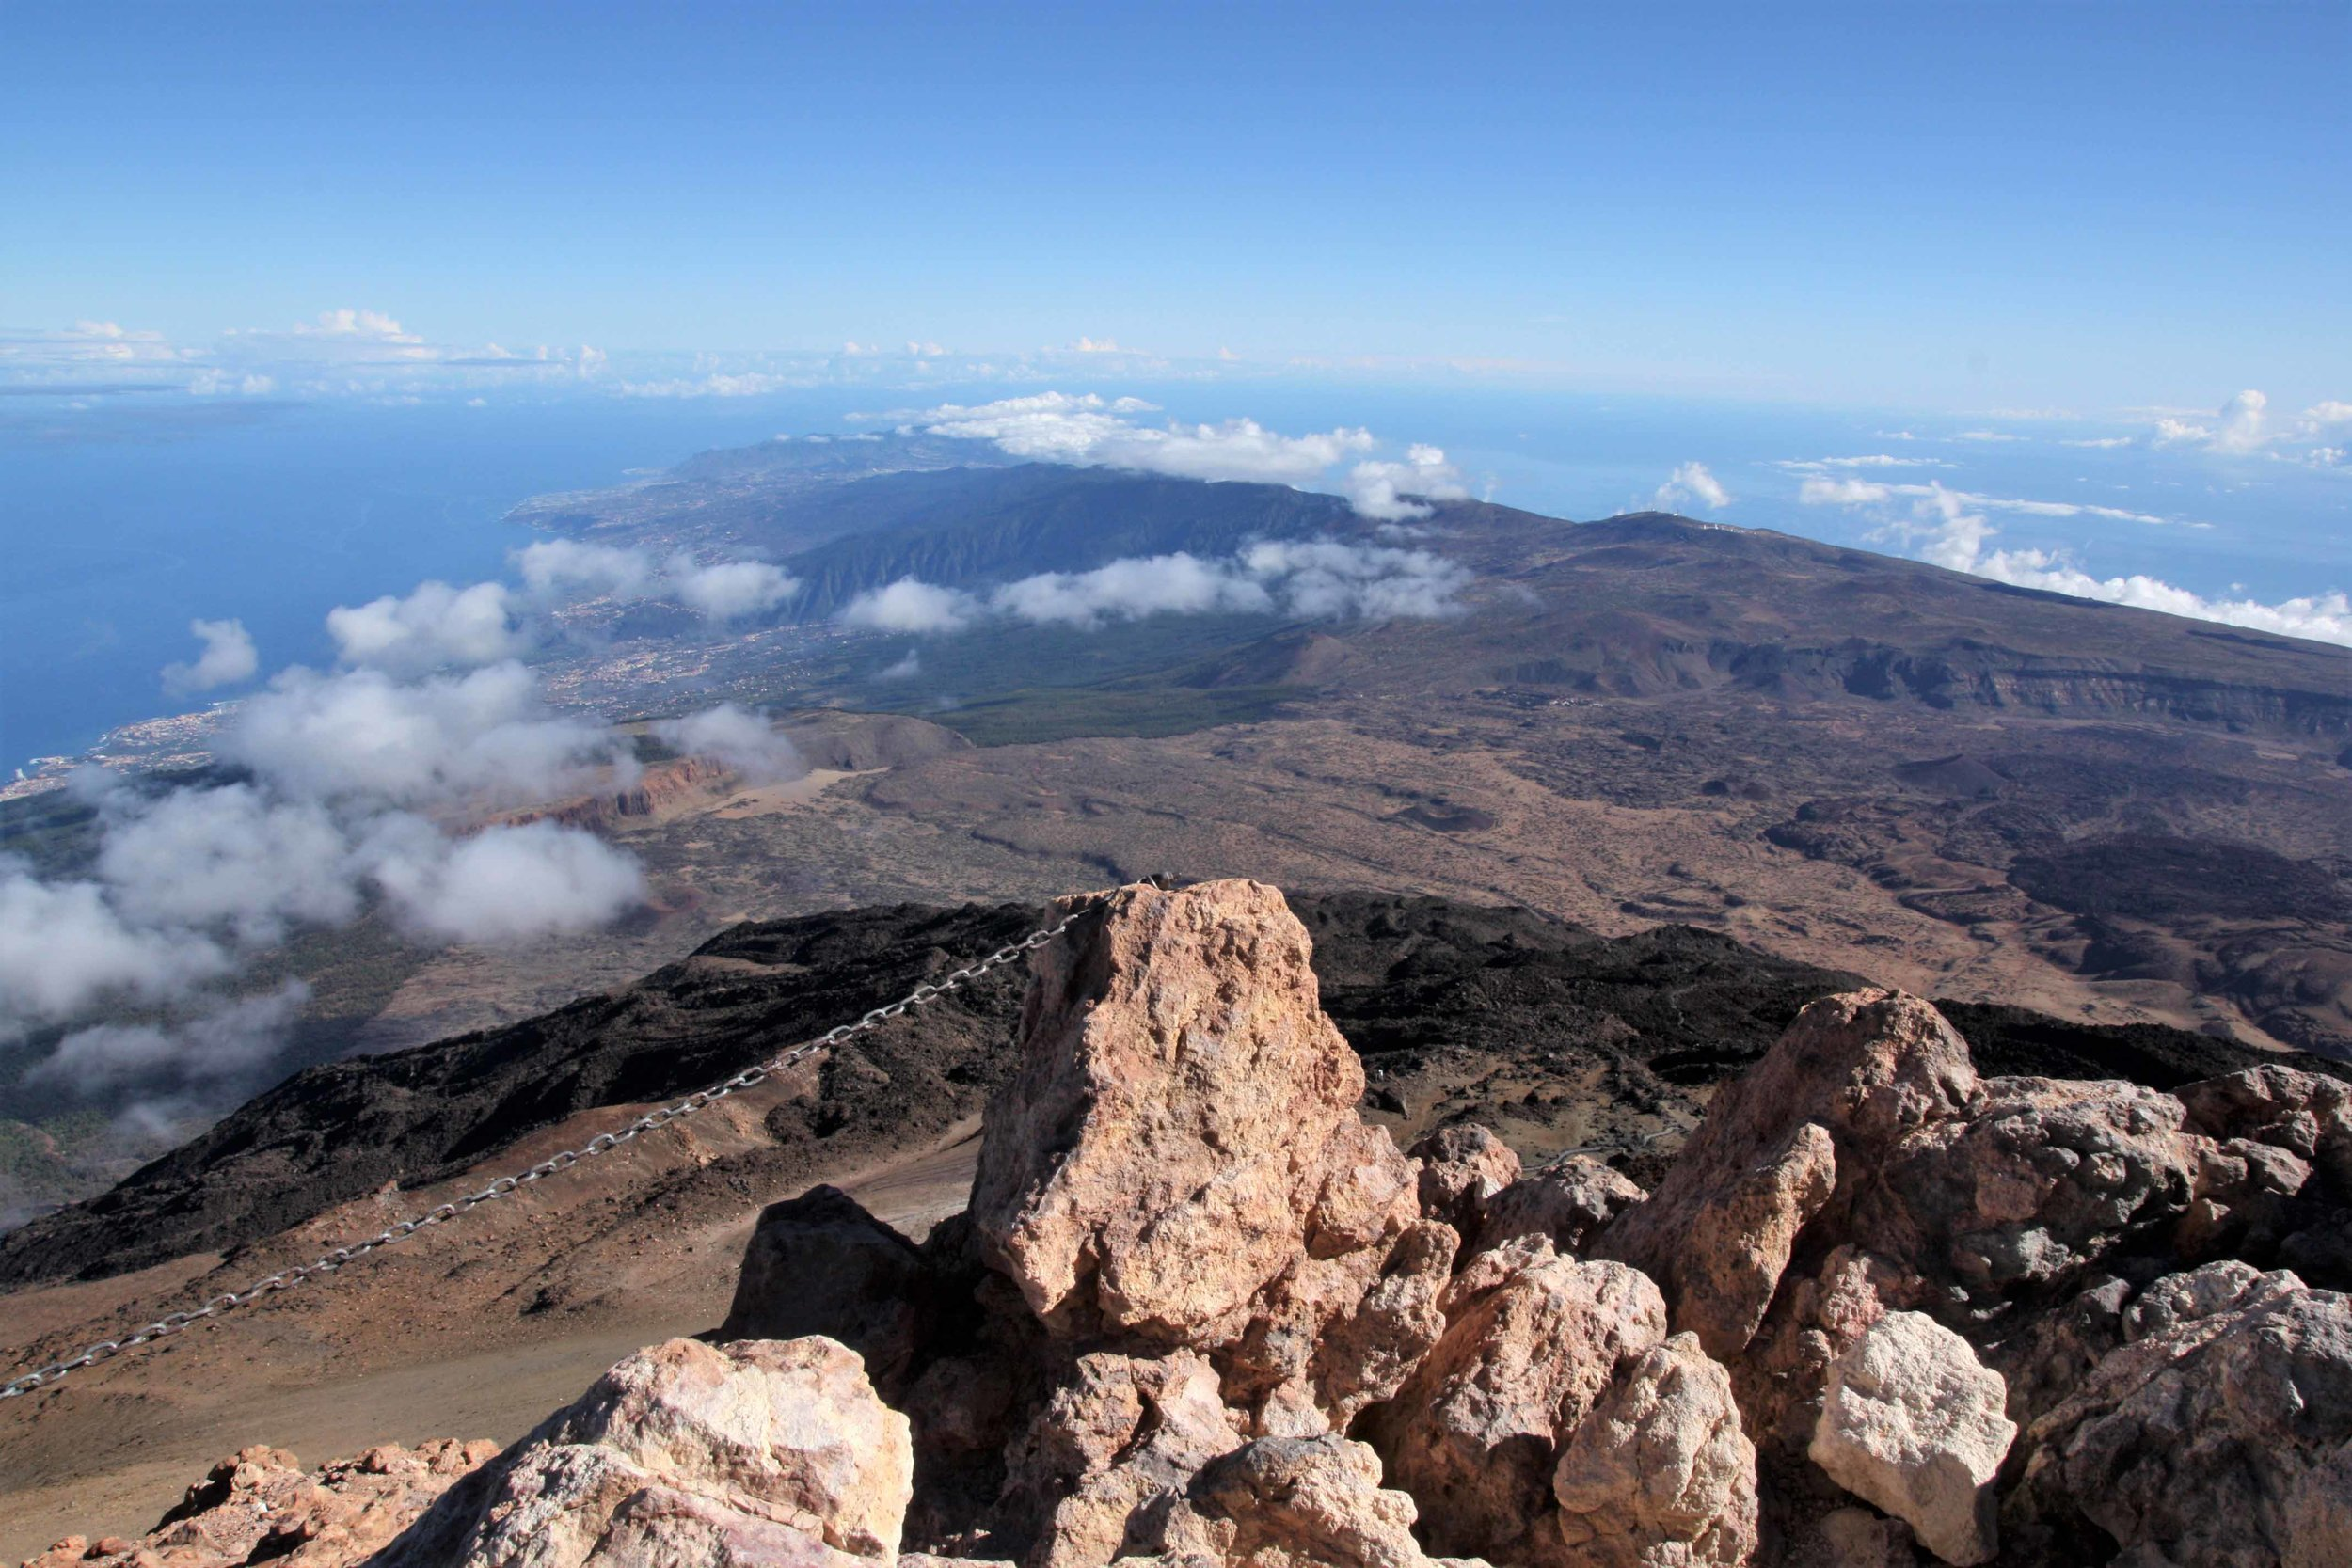 View northeast across Tenerife, Canary Islands, from Pico del Teide.